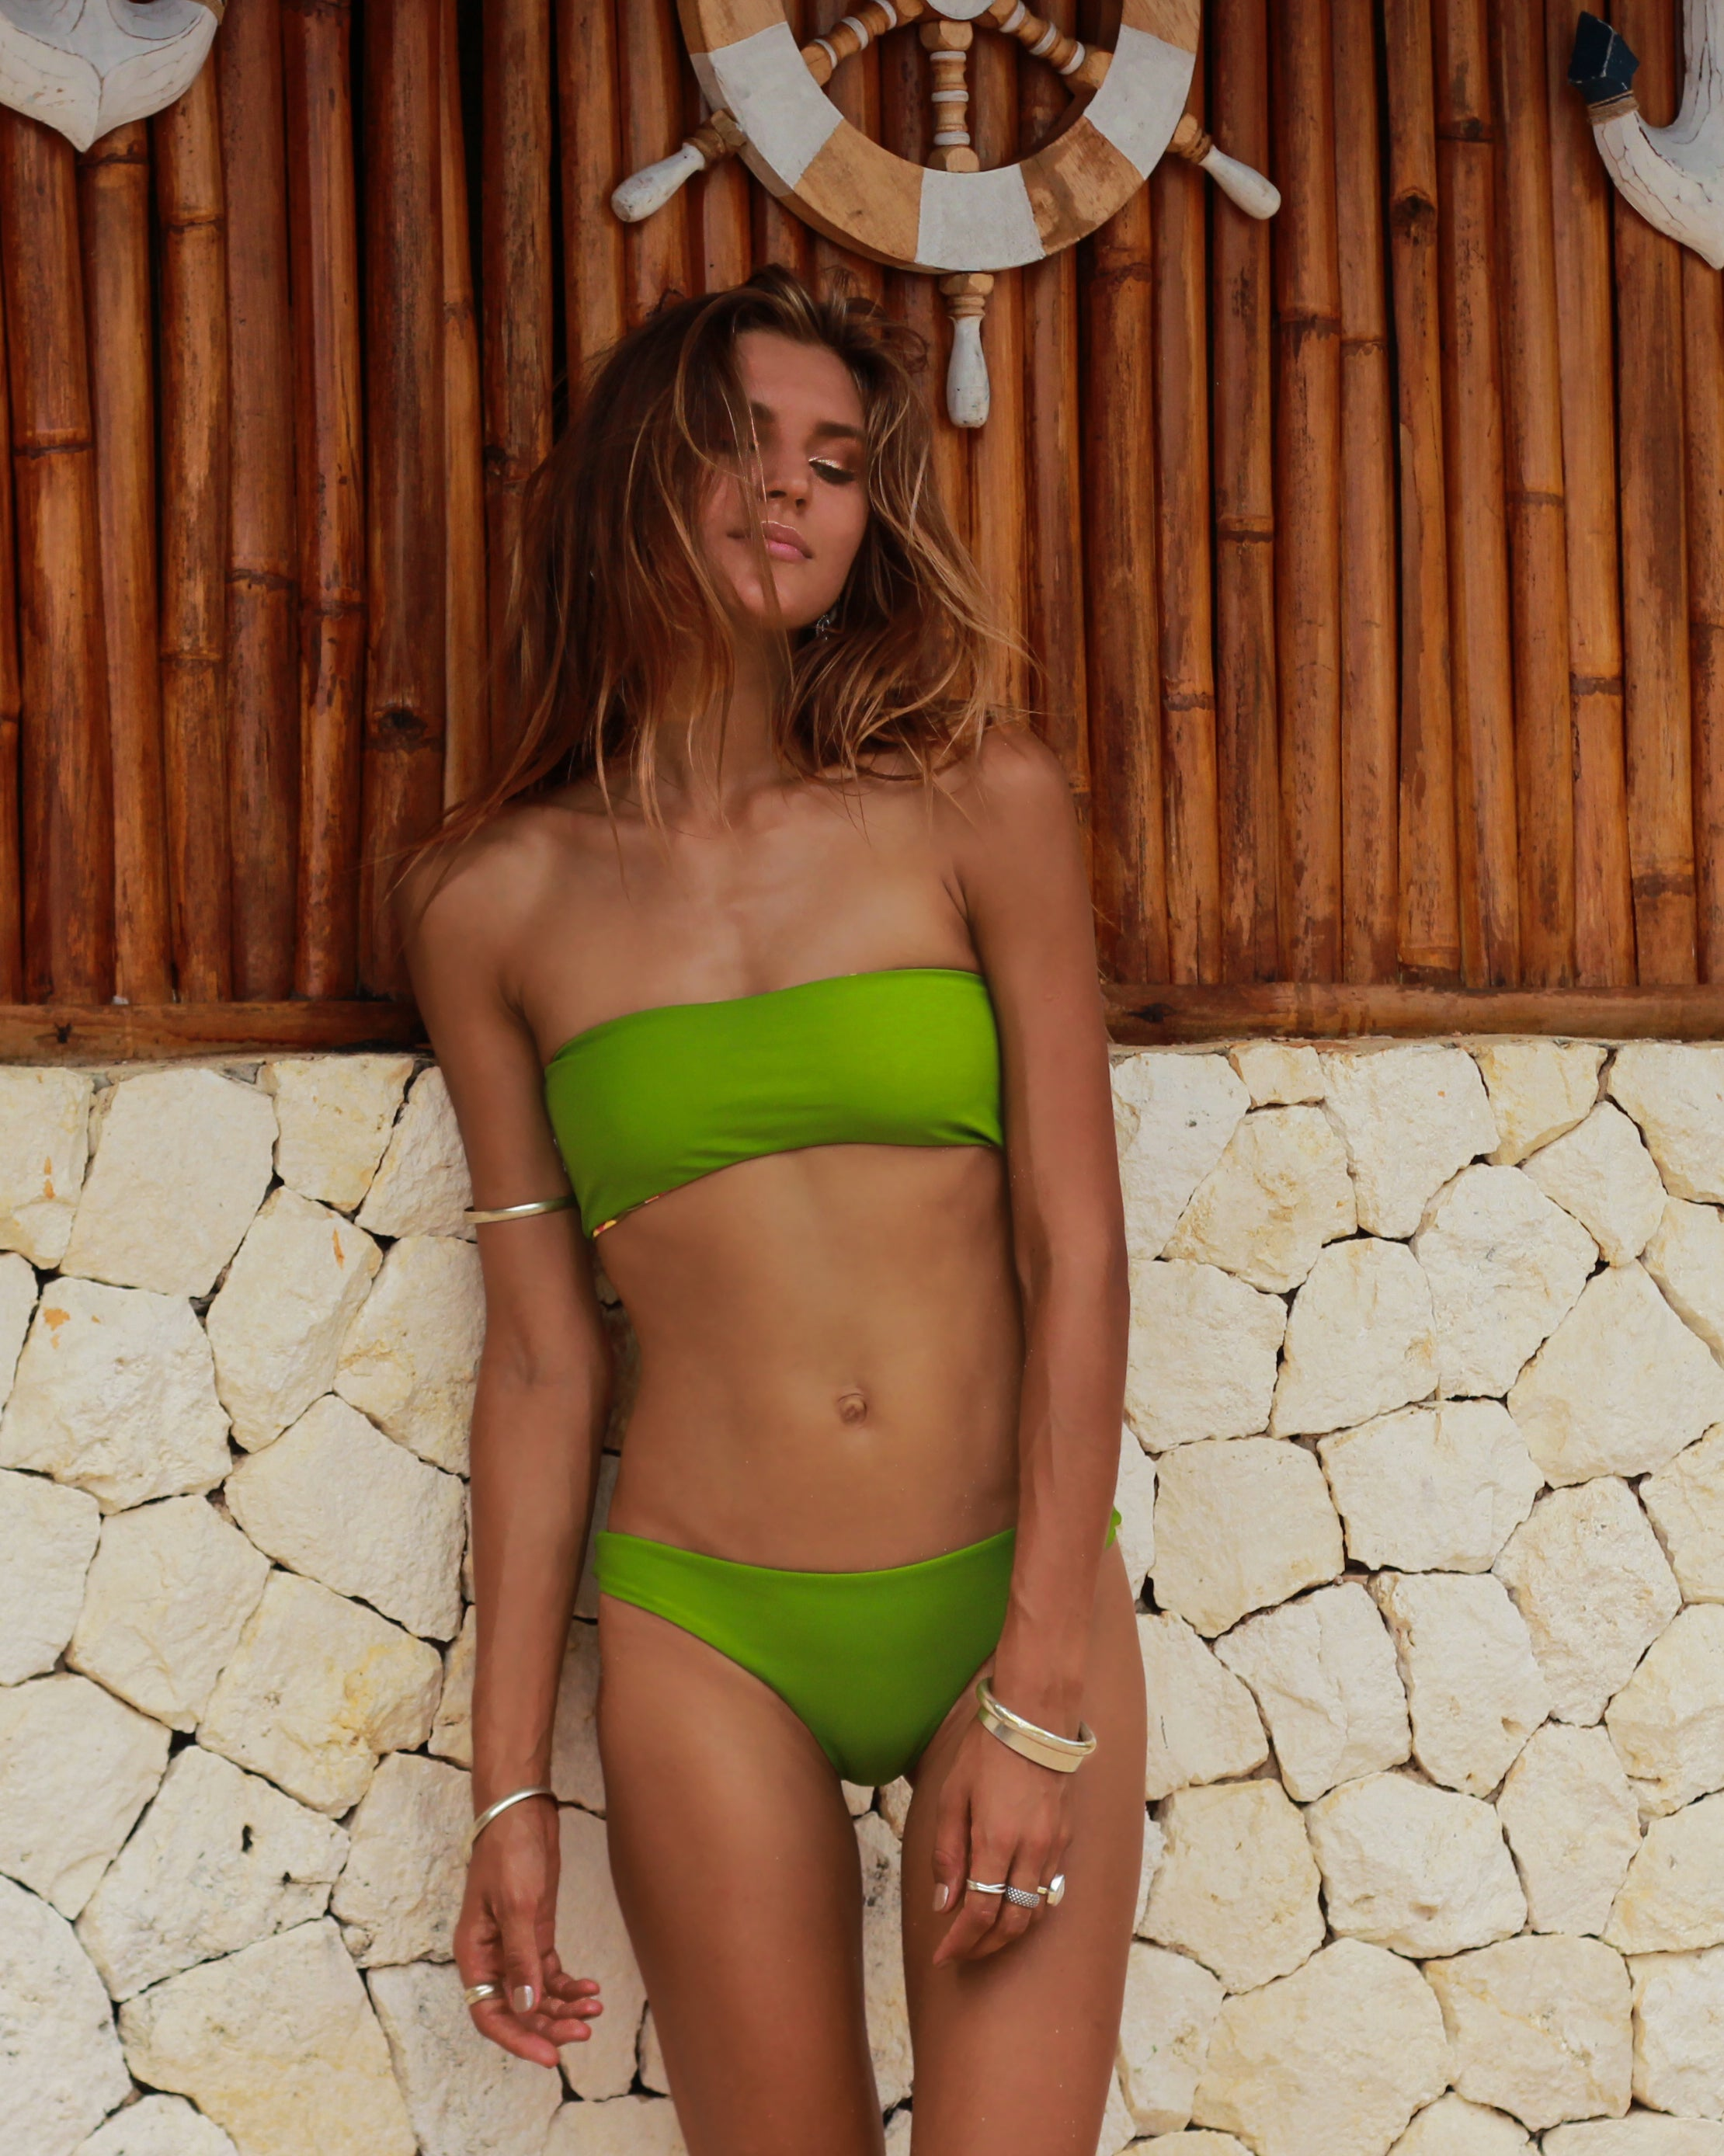 San Clemente Bandeau Top - Wallflower Olive / Moss - cheeky cut brazilian surf bikinis Cenote Swimwear that stays on in the surf